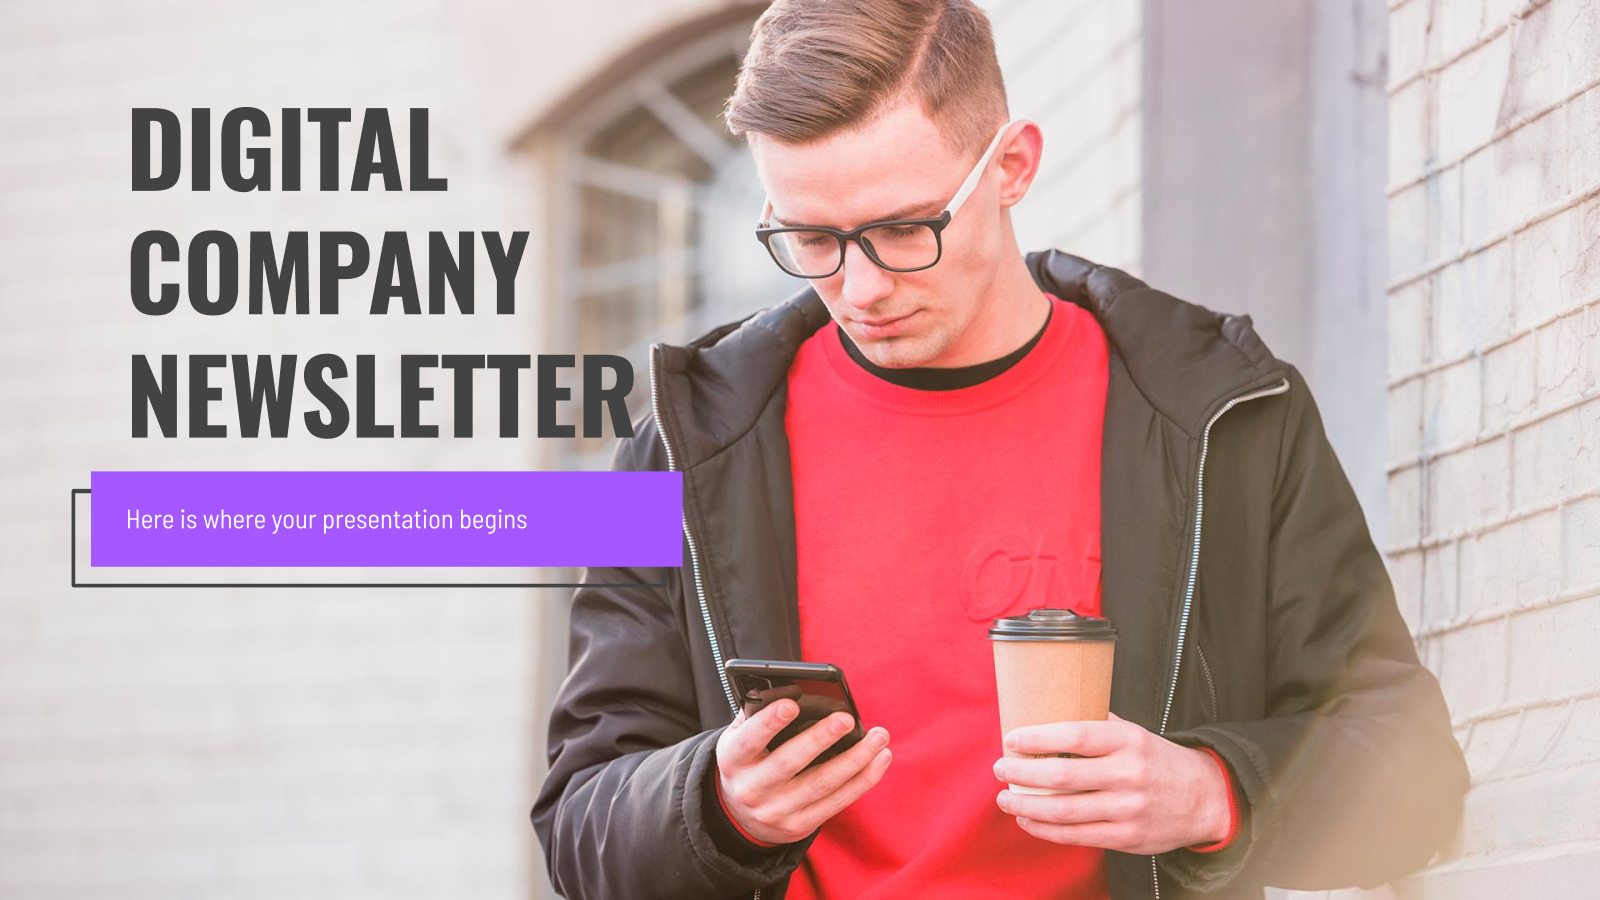 Digital Company Newsletter presentation template